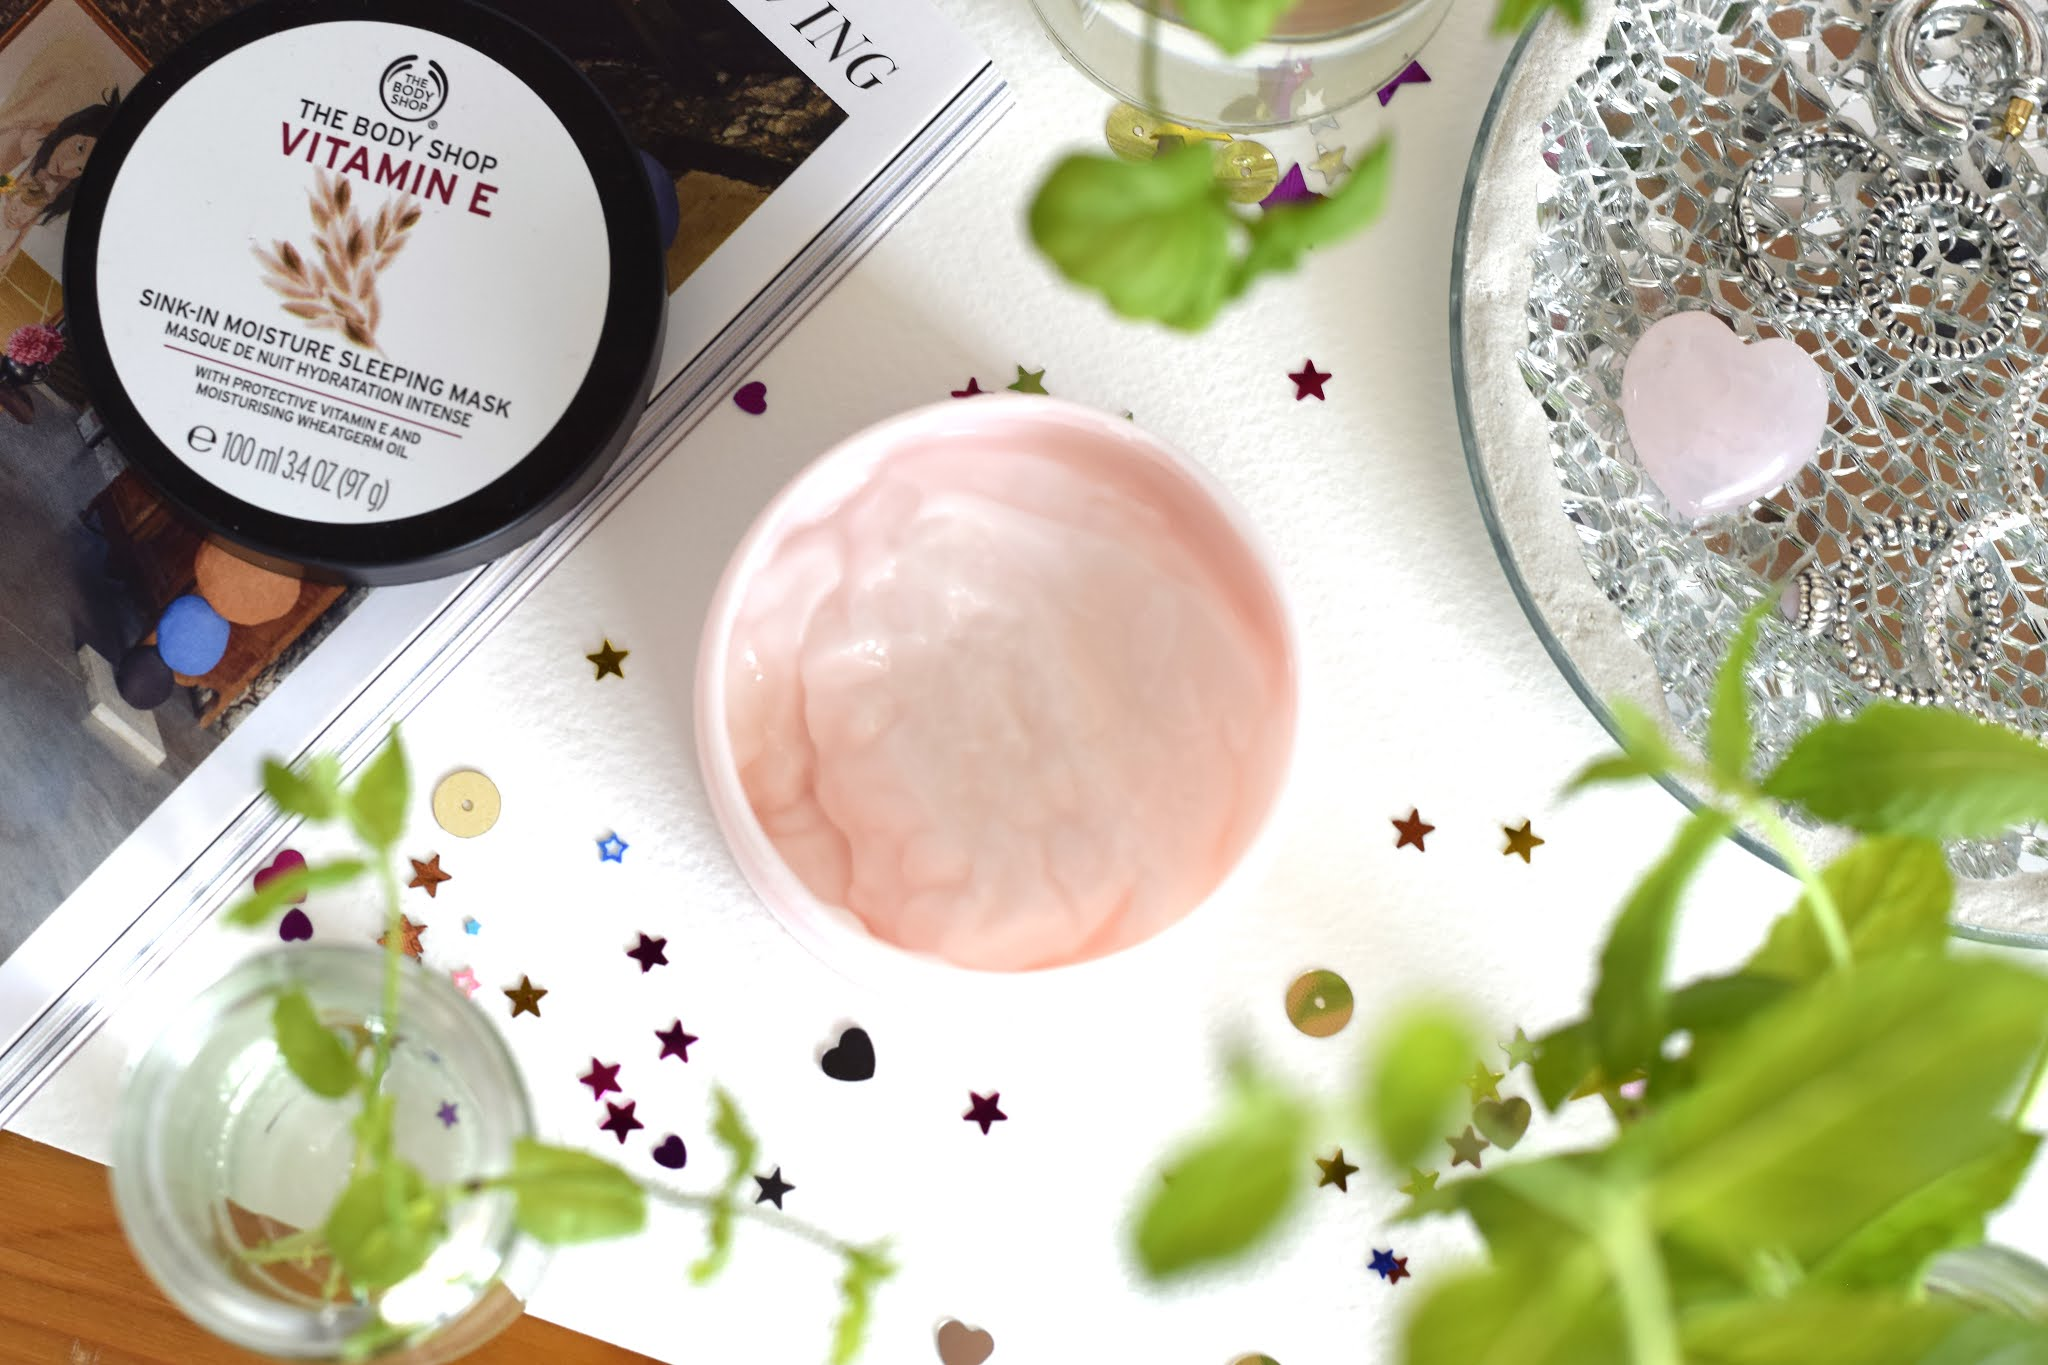 a pot of moisturiser in the center of the image with the lif placed to the side. The pot is surrounded by sequins and jars of mint